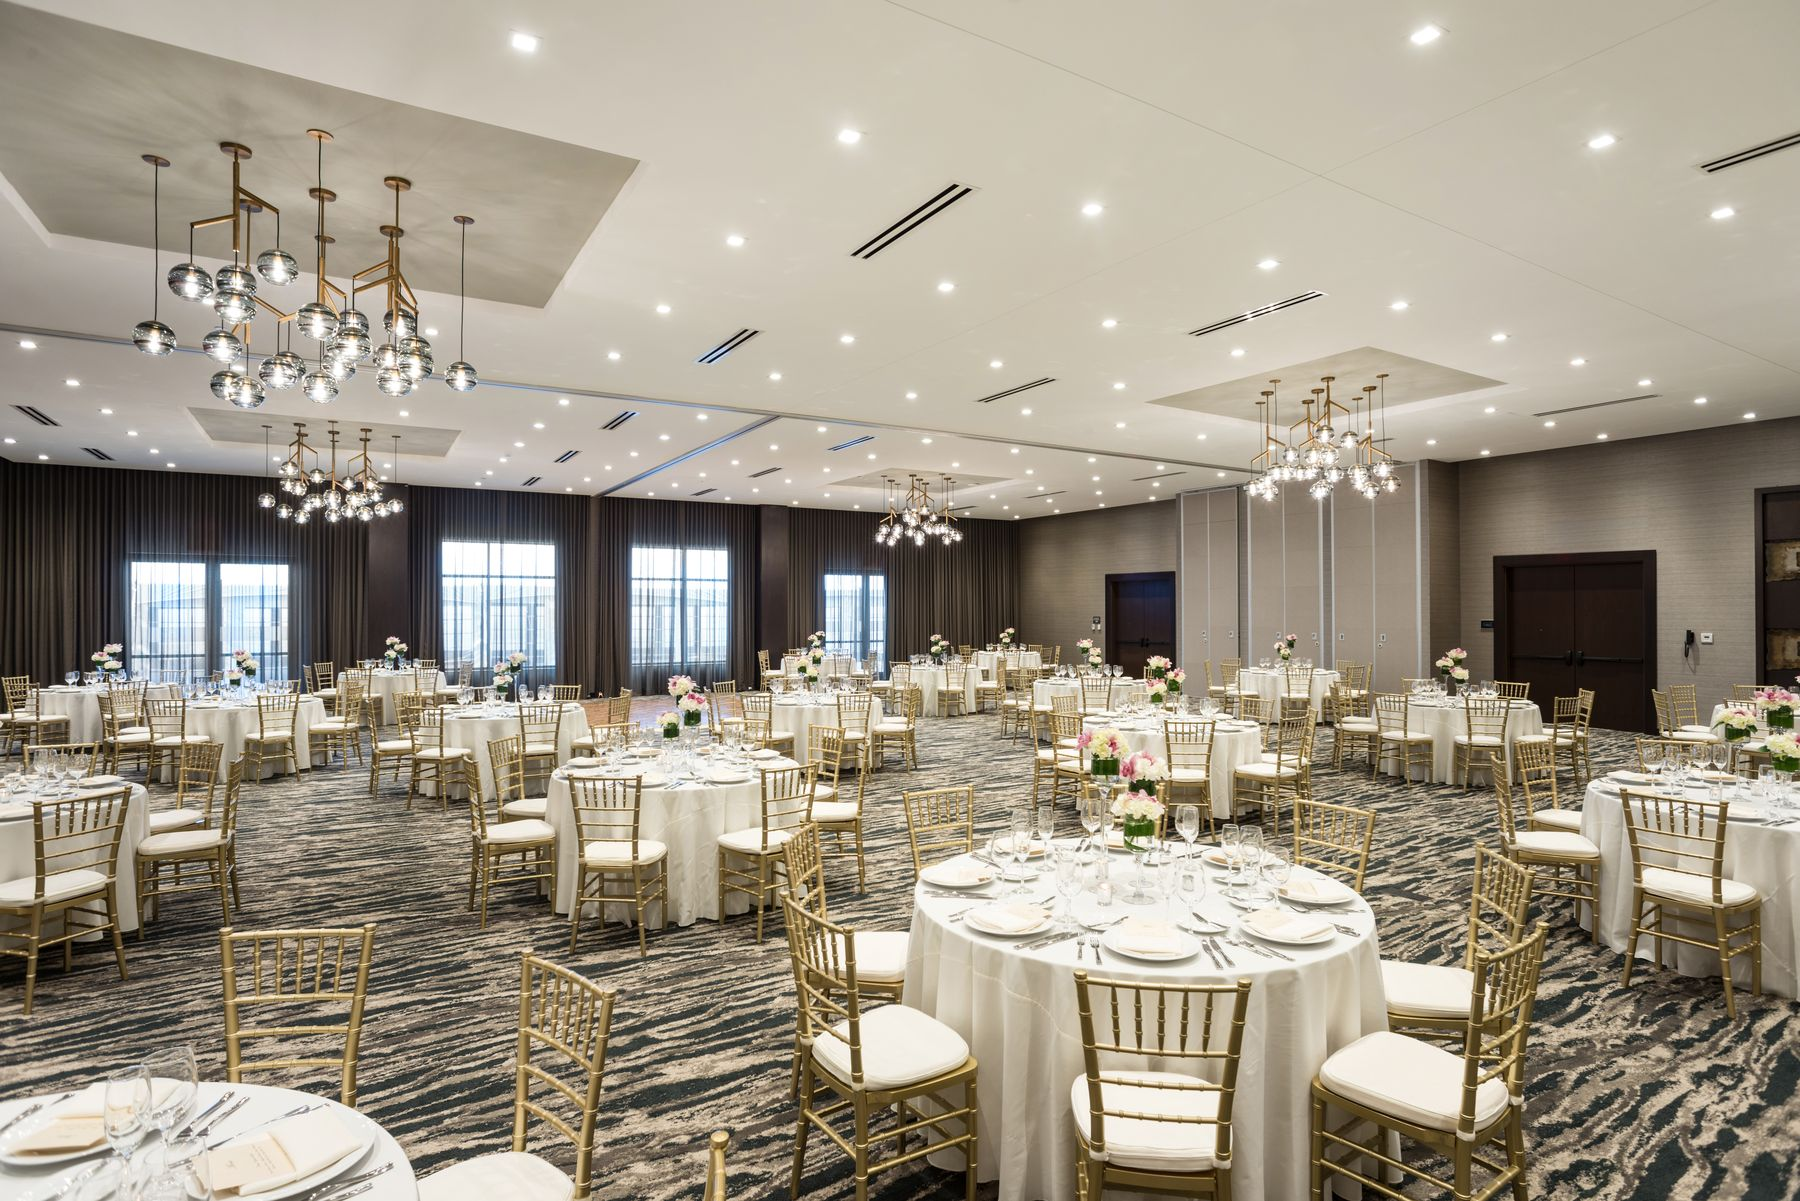 Event space set with banquet rounds